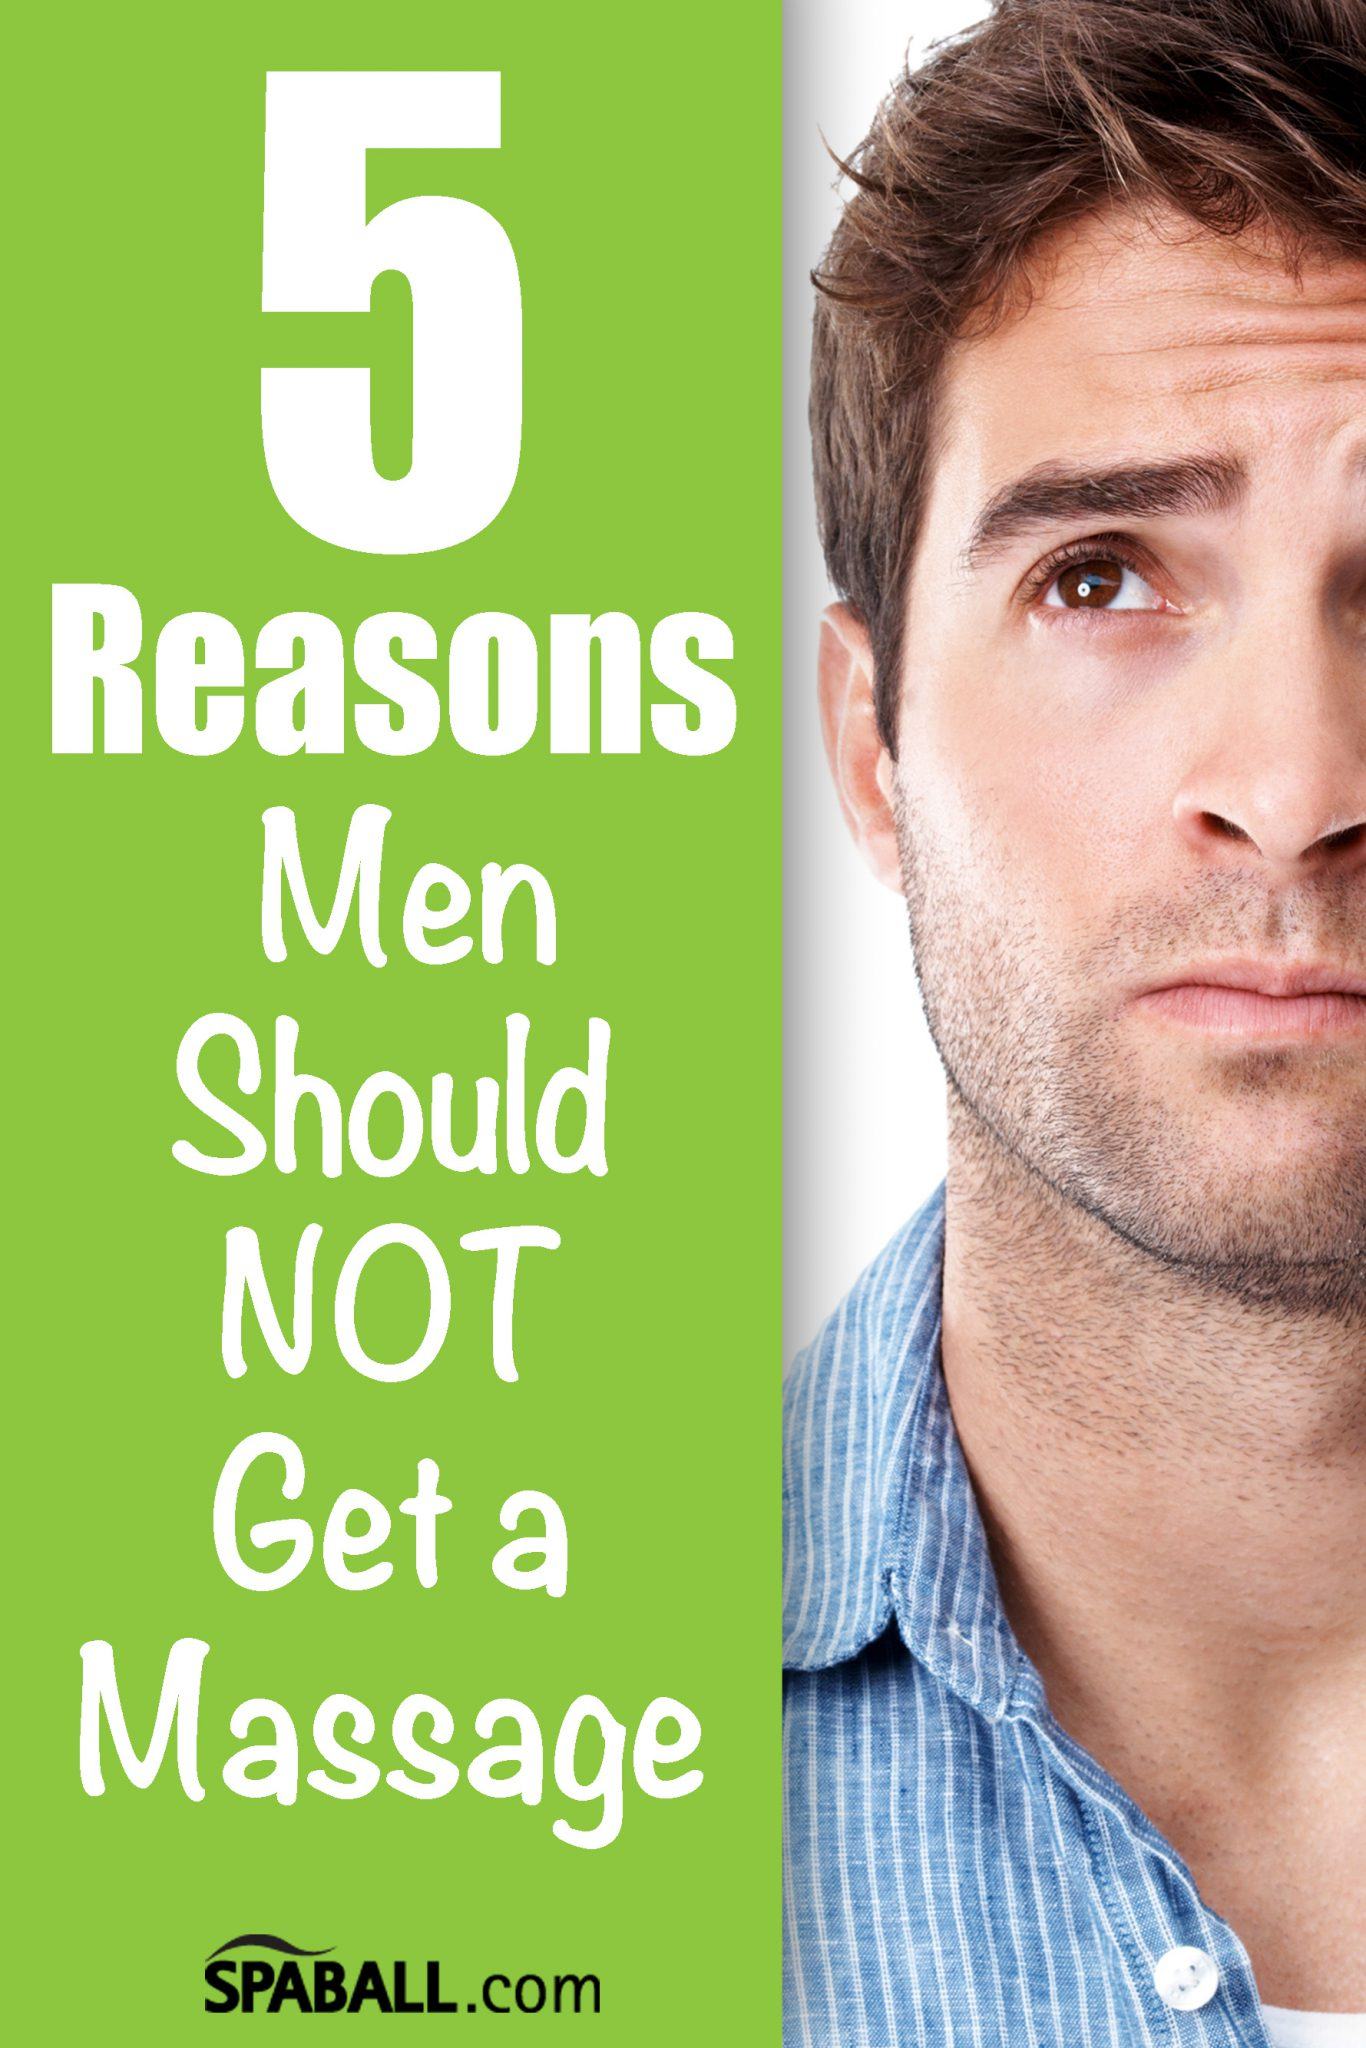 5 Reasons Men Should NOT Get a Massage